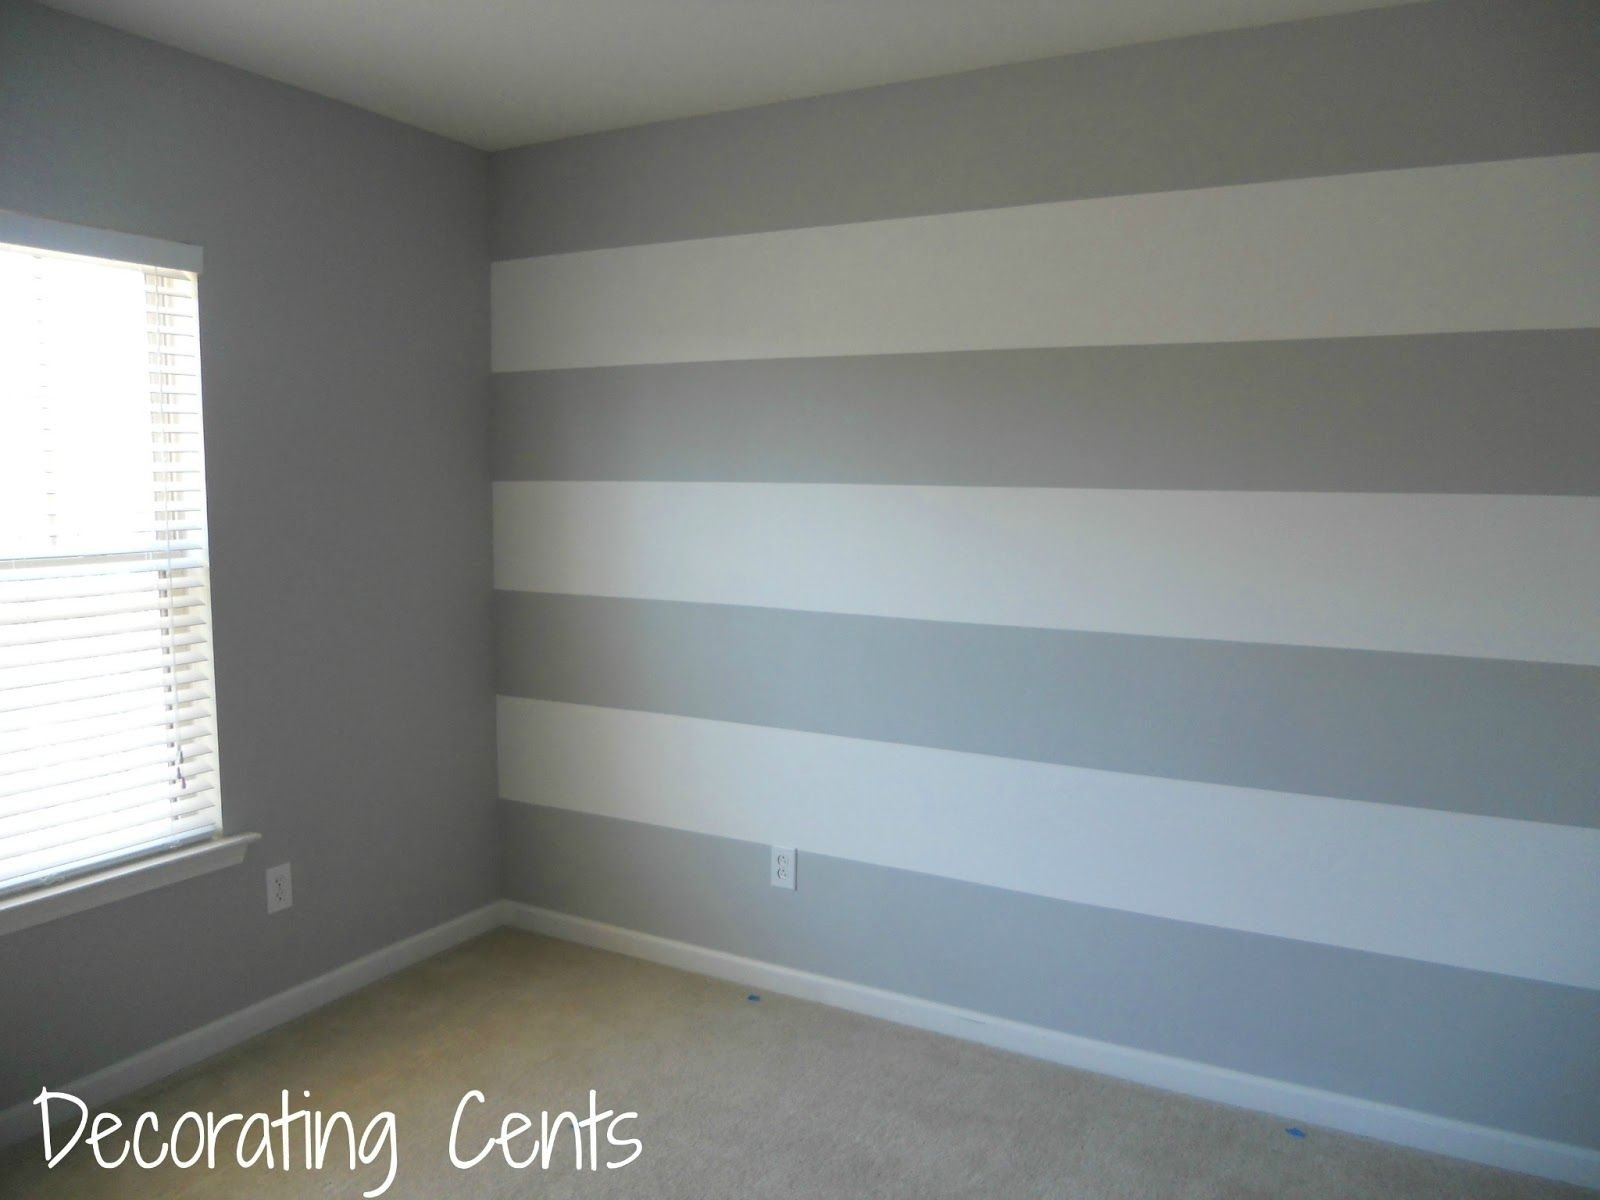 Decorating Cents: Painting A Striped Wall | Bedrooms | Pinterest in Most Recently Released Vertical Stripes Wall Accents